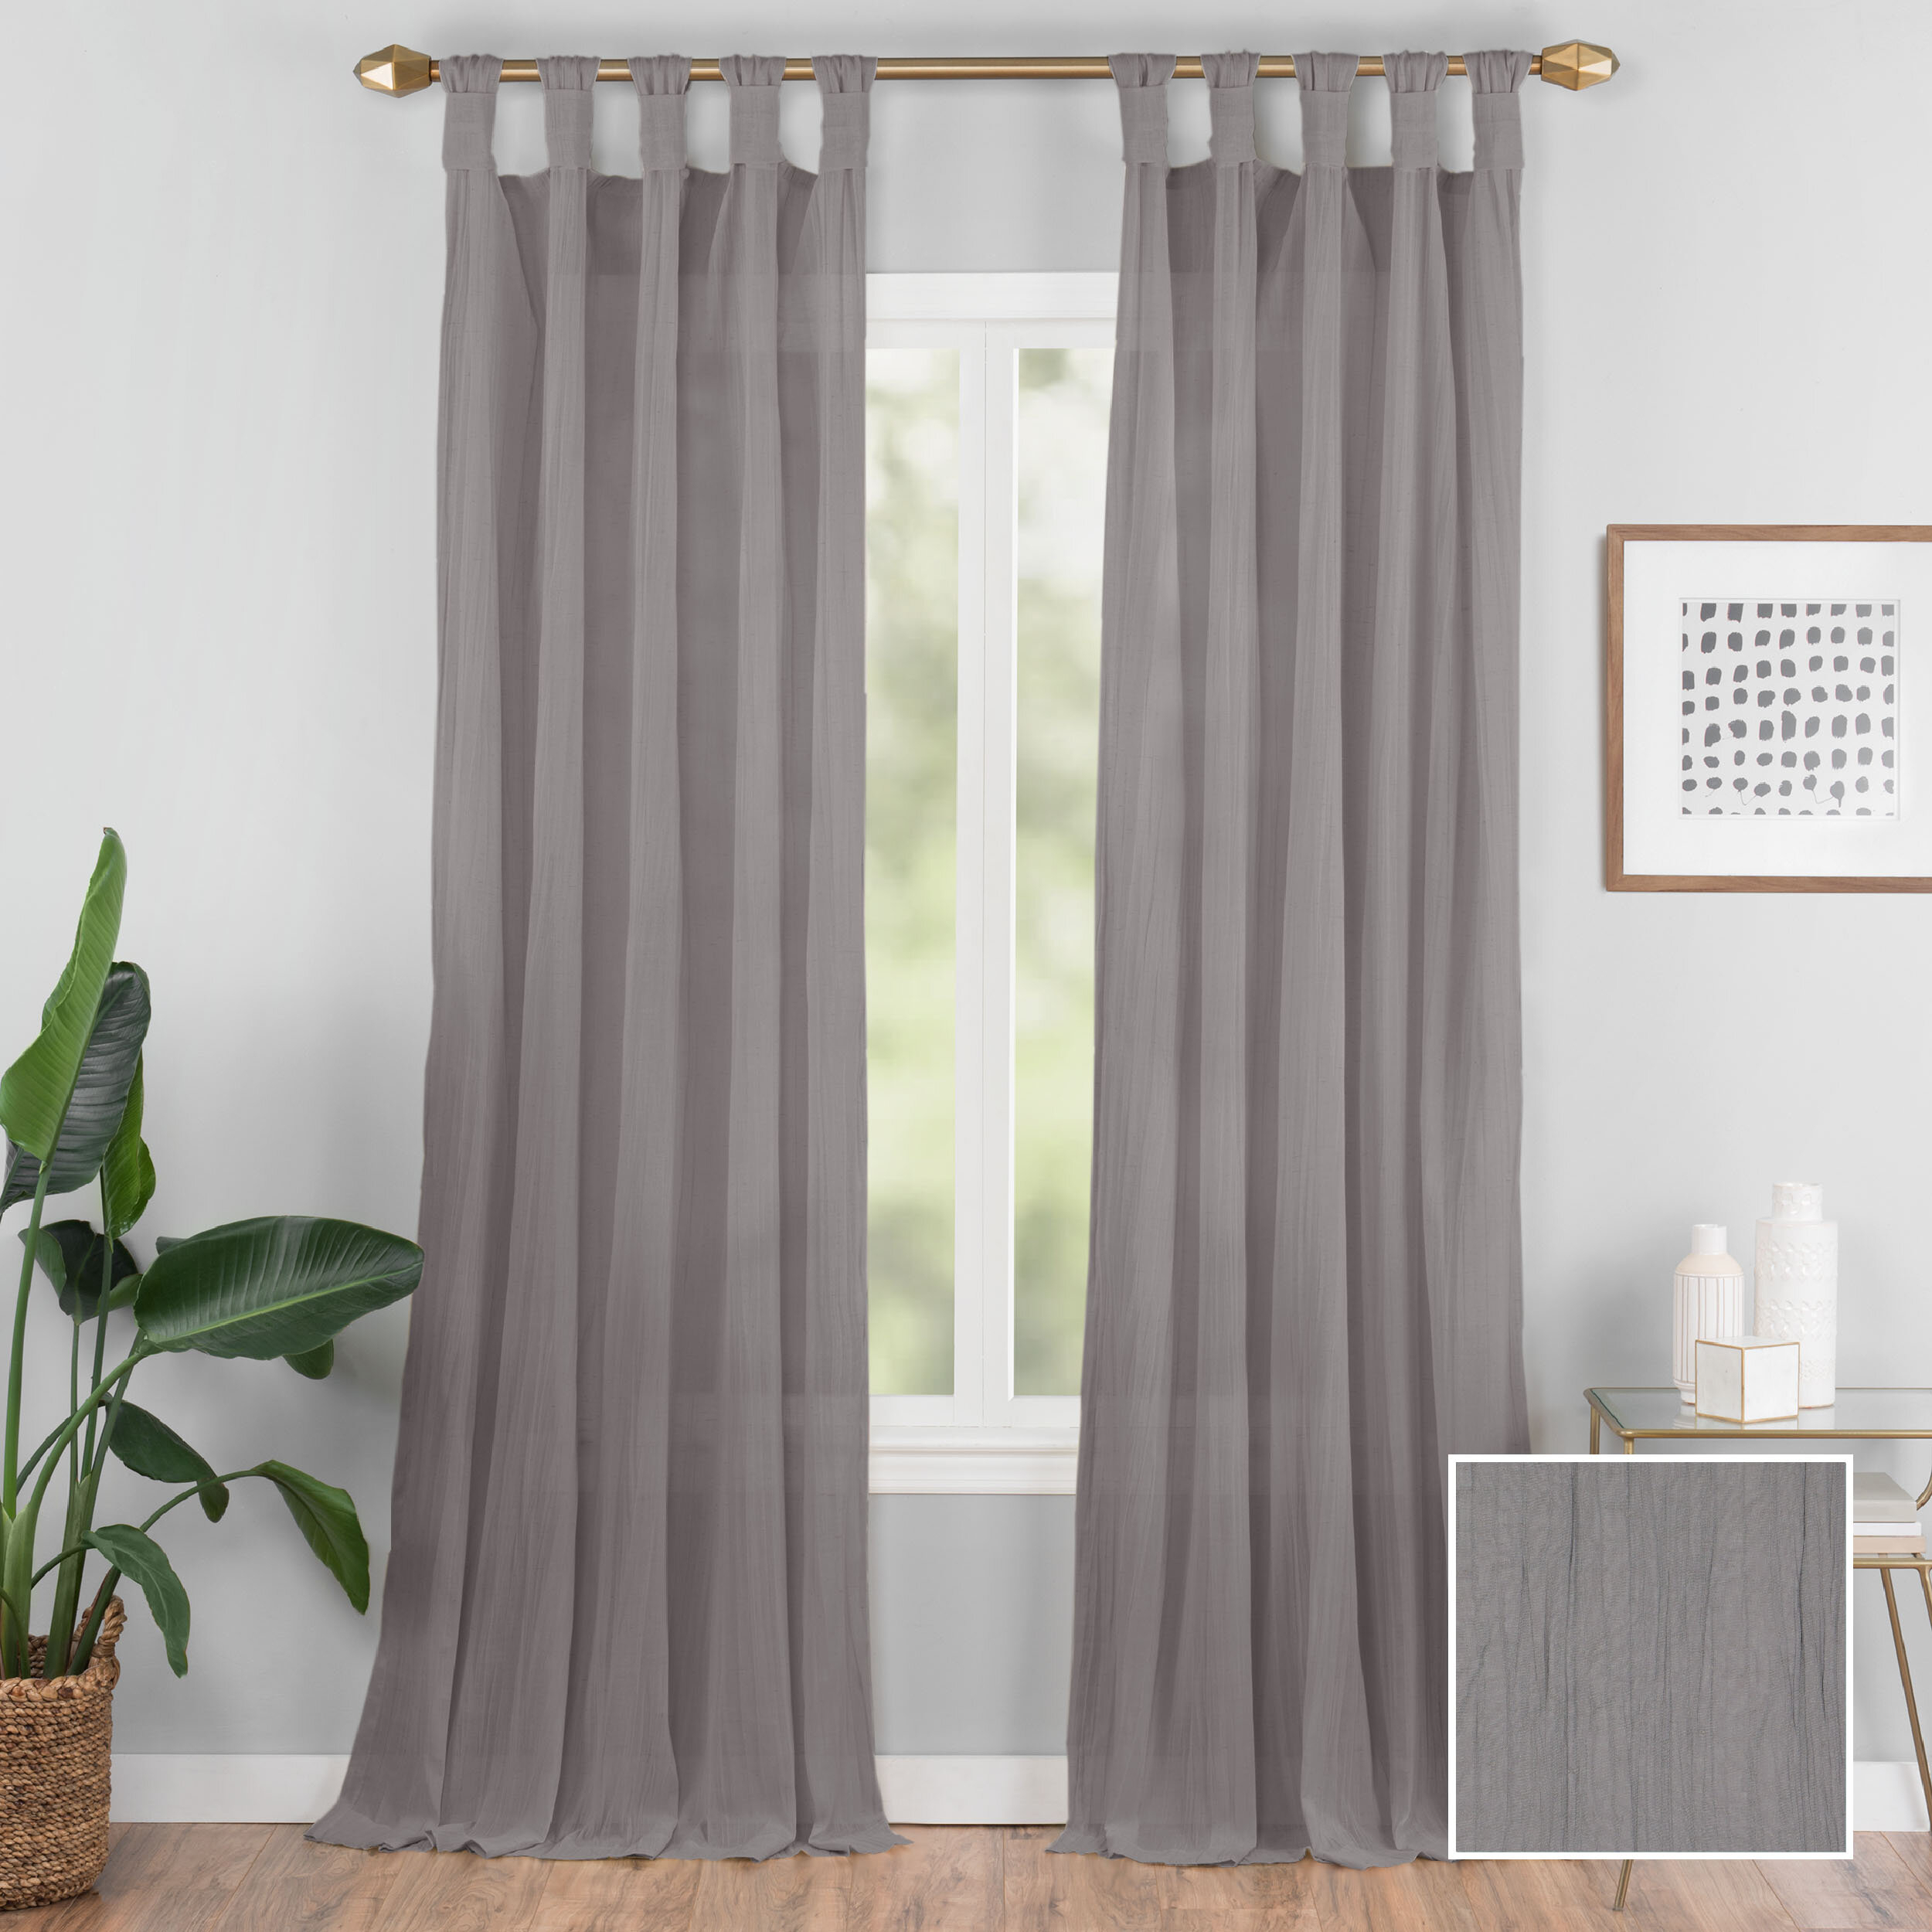 Connors Solid Semi Sheer Tab Top Single Curtain Panel Throughout Tab Top Sheer Single Curtain Panels (View 5 of 30)